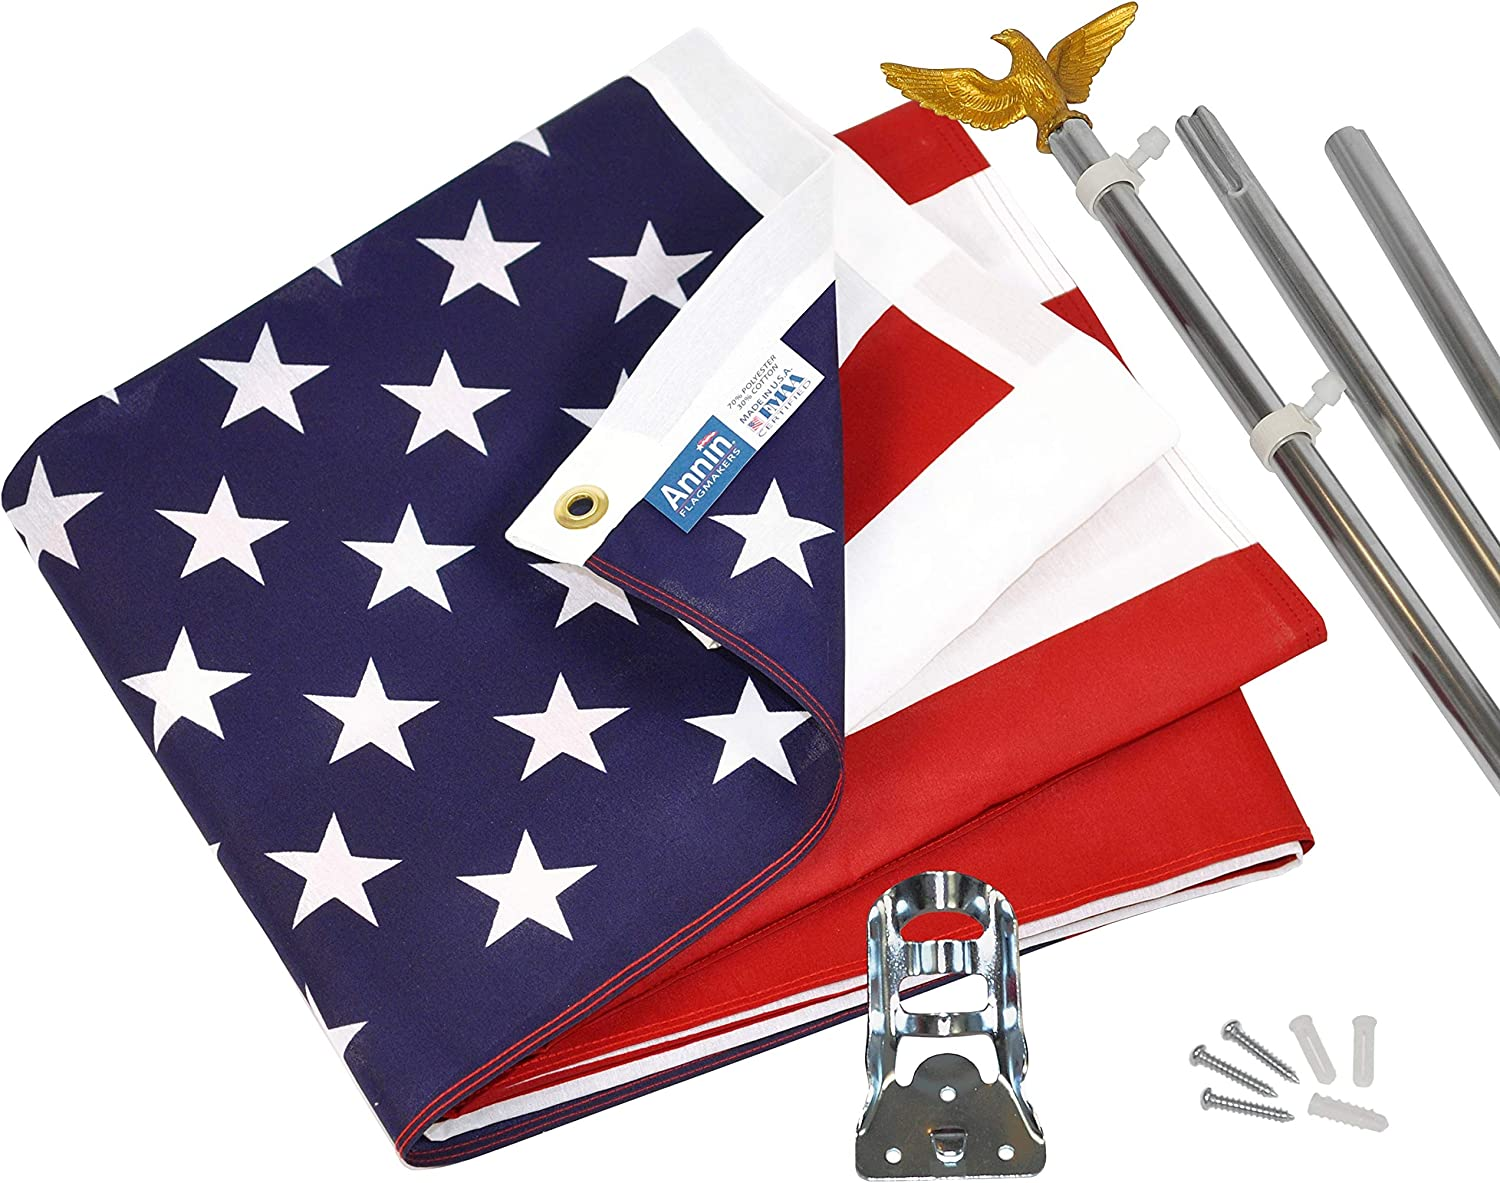 Annin Flagmakers Model 11325 American Flag and Flagpole Set – 6 ft. 3 Section Aluminum Pole with US Flag 3×5 ft, U.S. Flag Kit